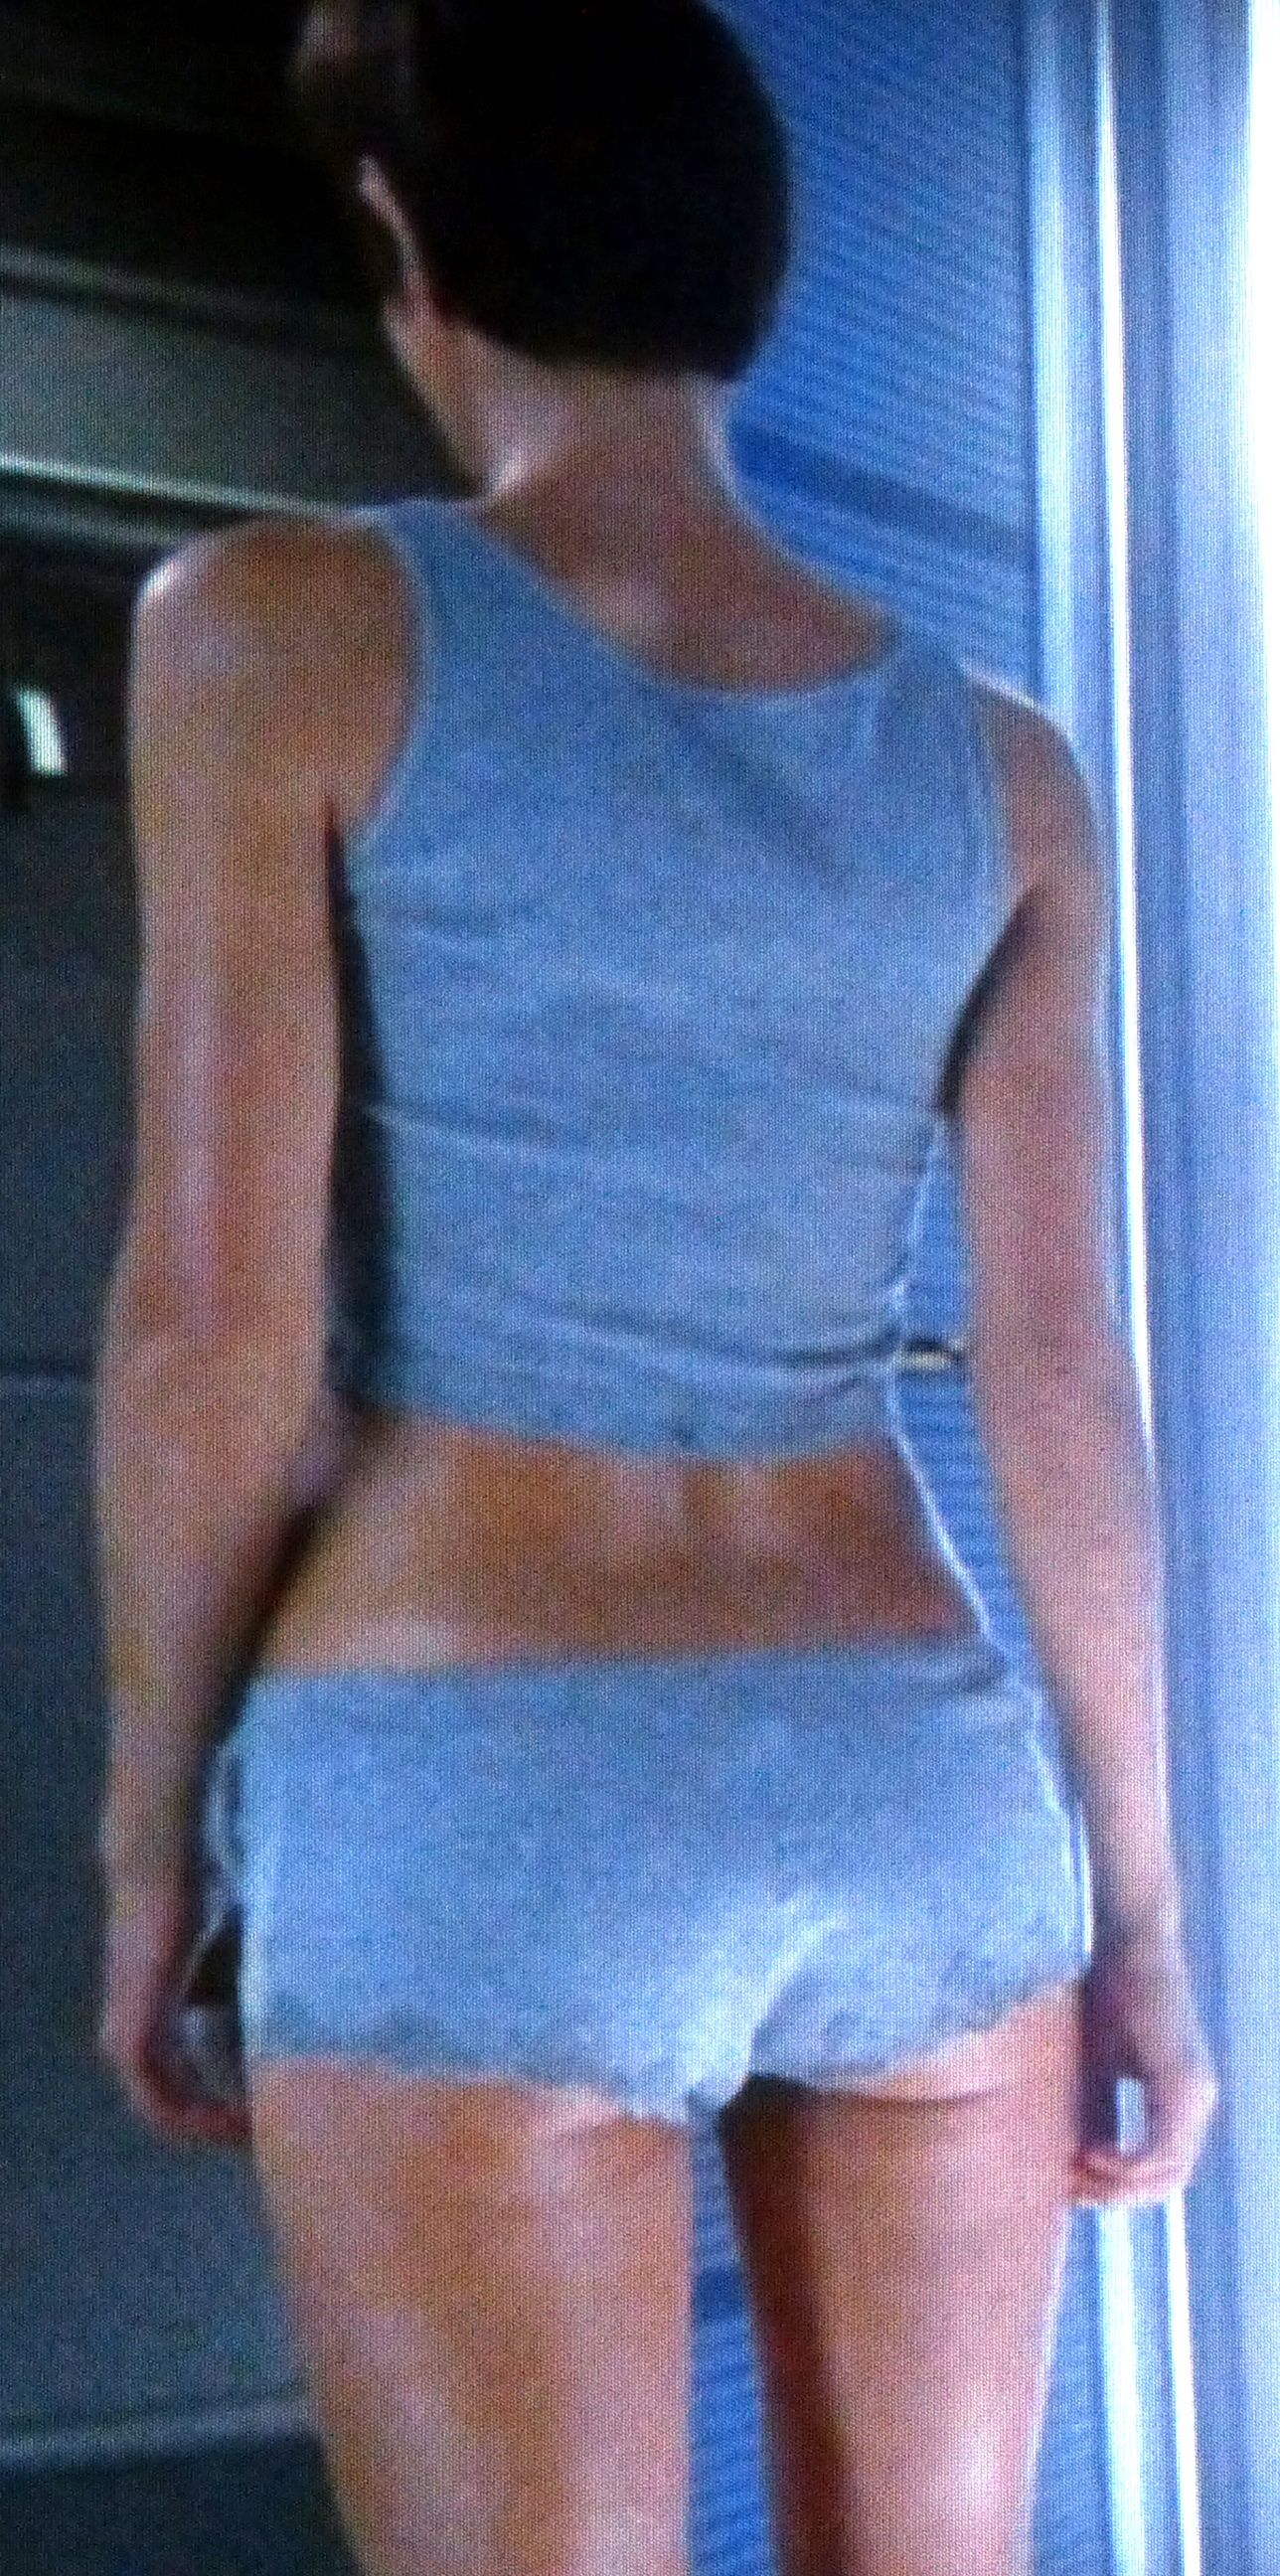 Jolene blalock best ass